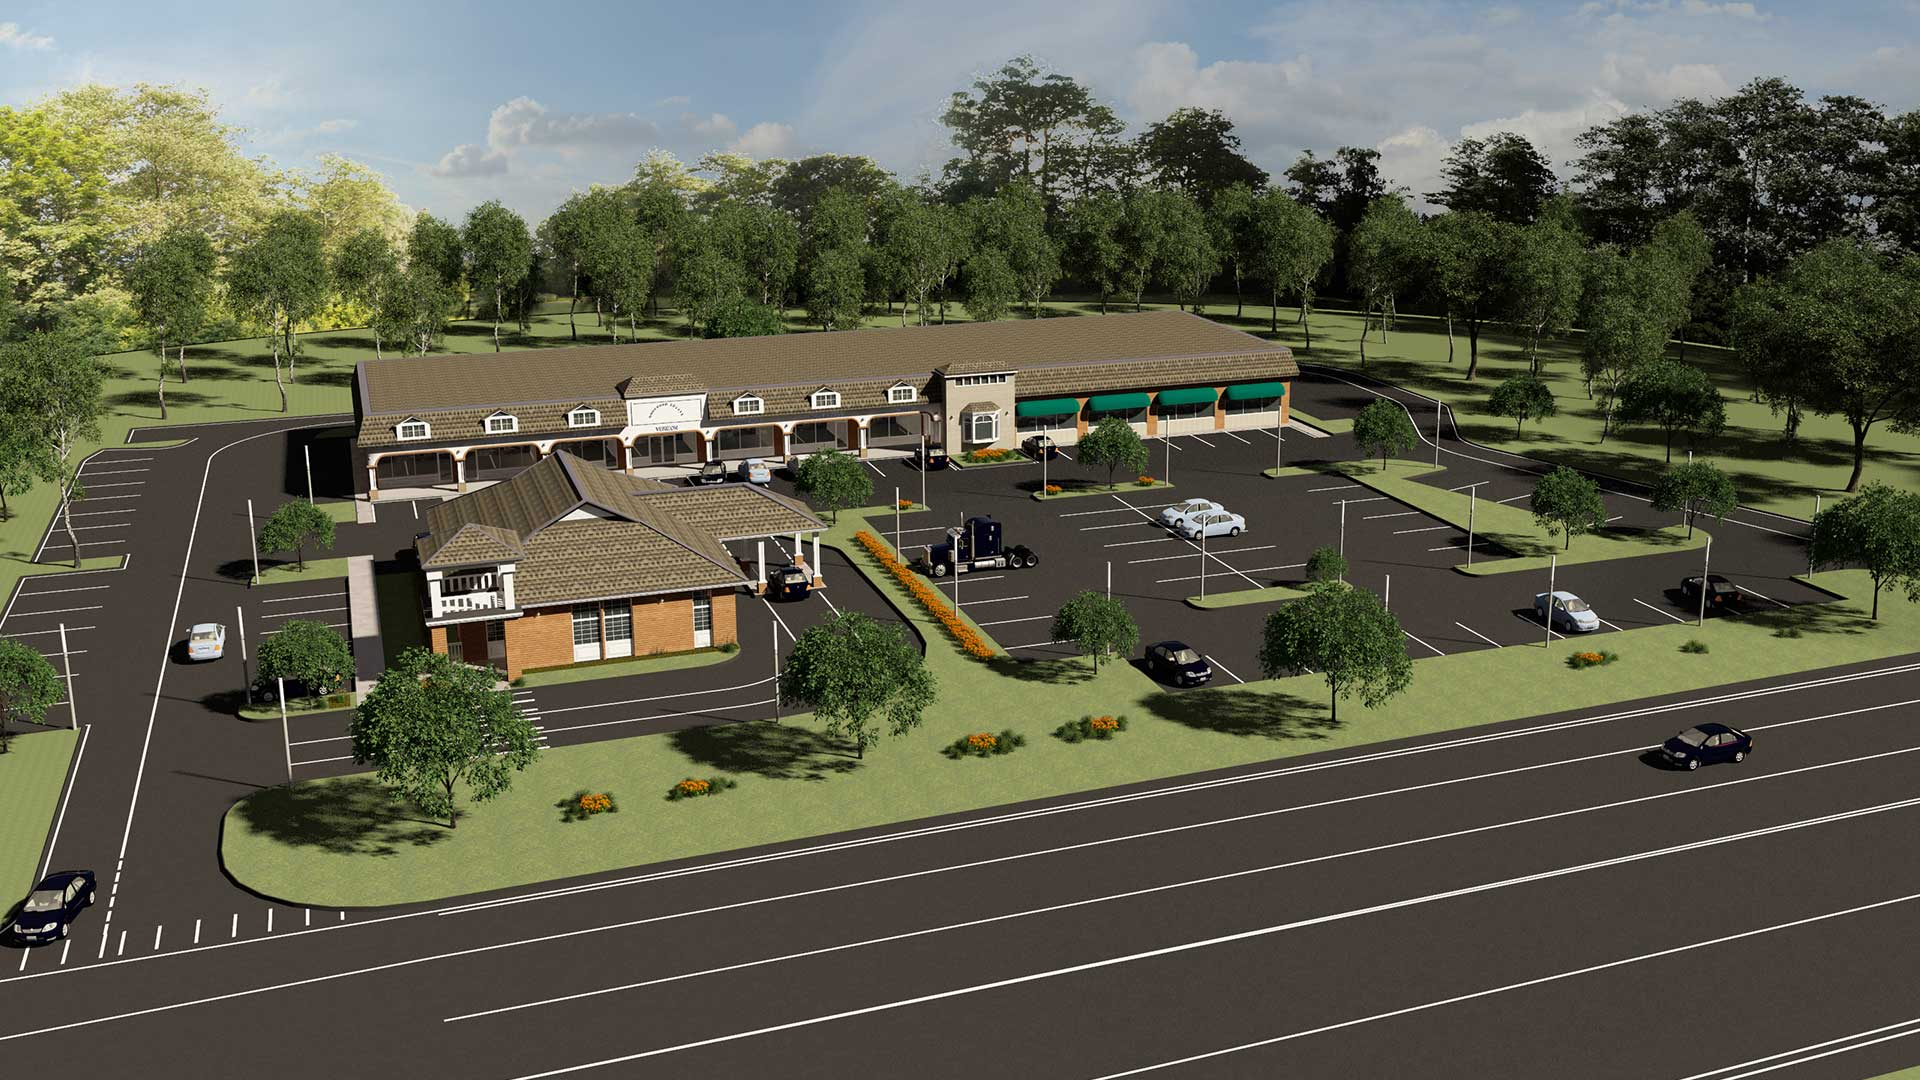 Orchard Square Westford MA | Retail Plaza | ABG Commercial